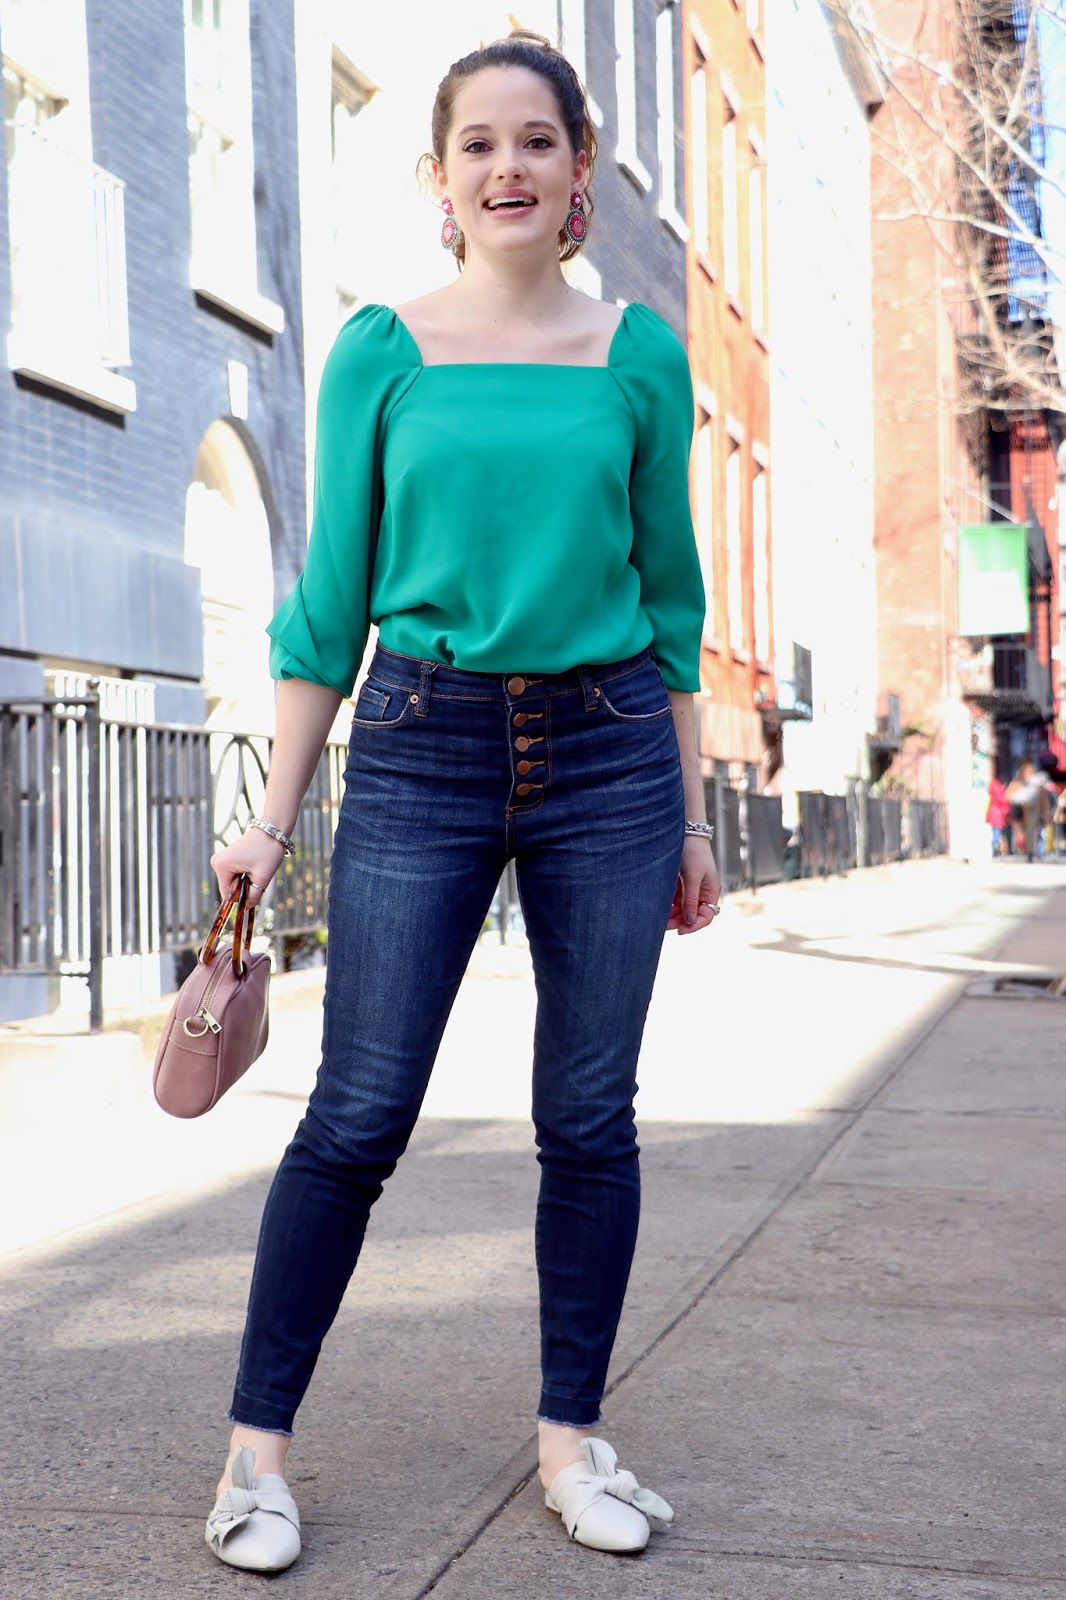 Nyc fashion blogger Kathleen Harper wearing a denim spring outfit